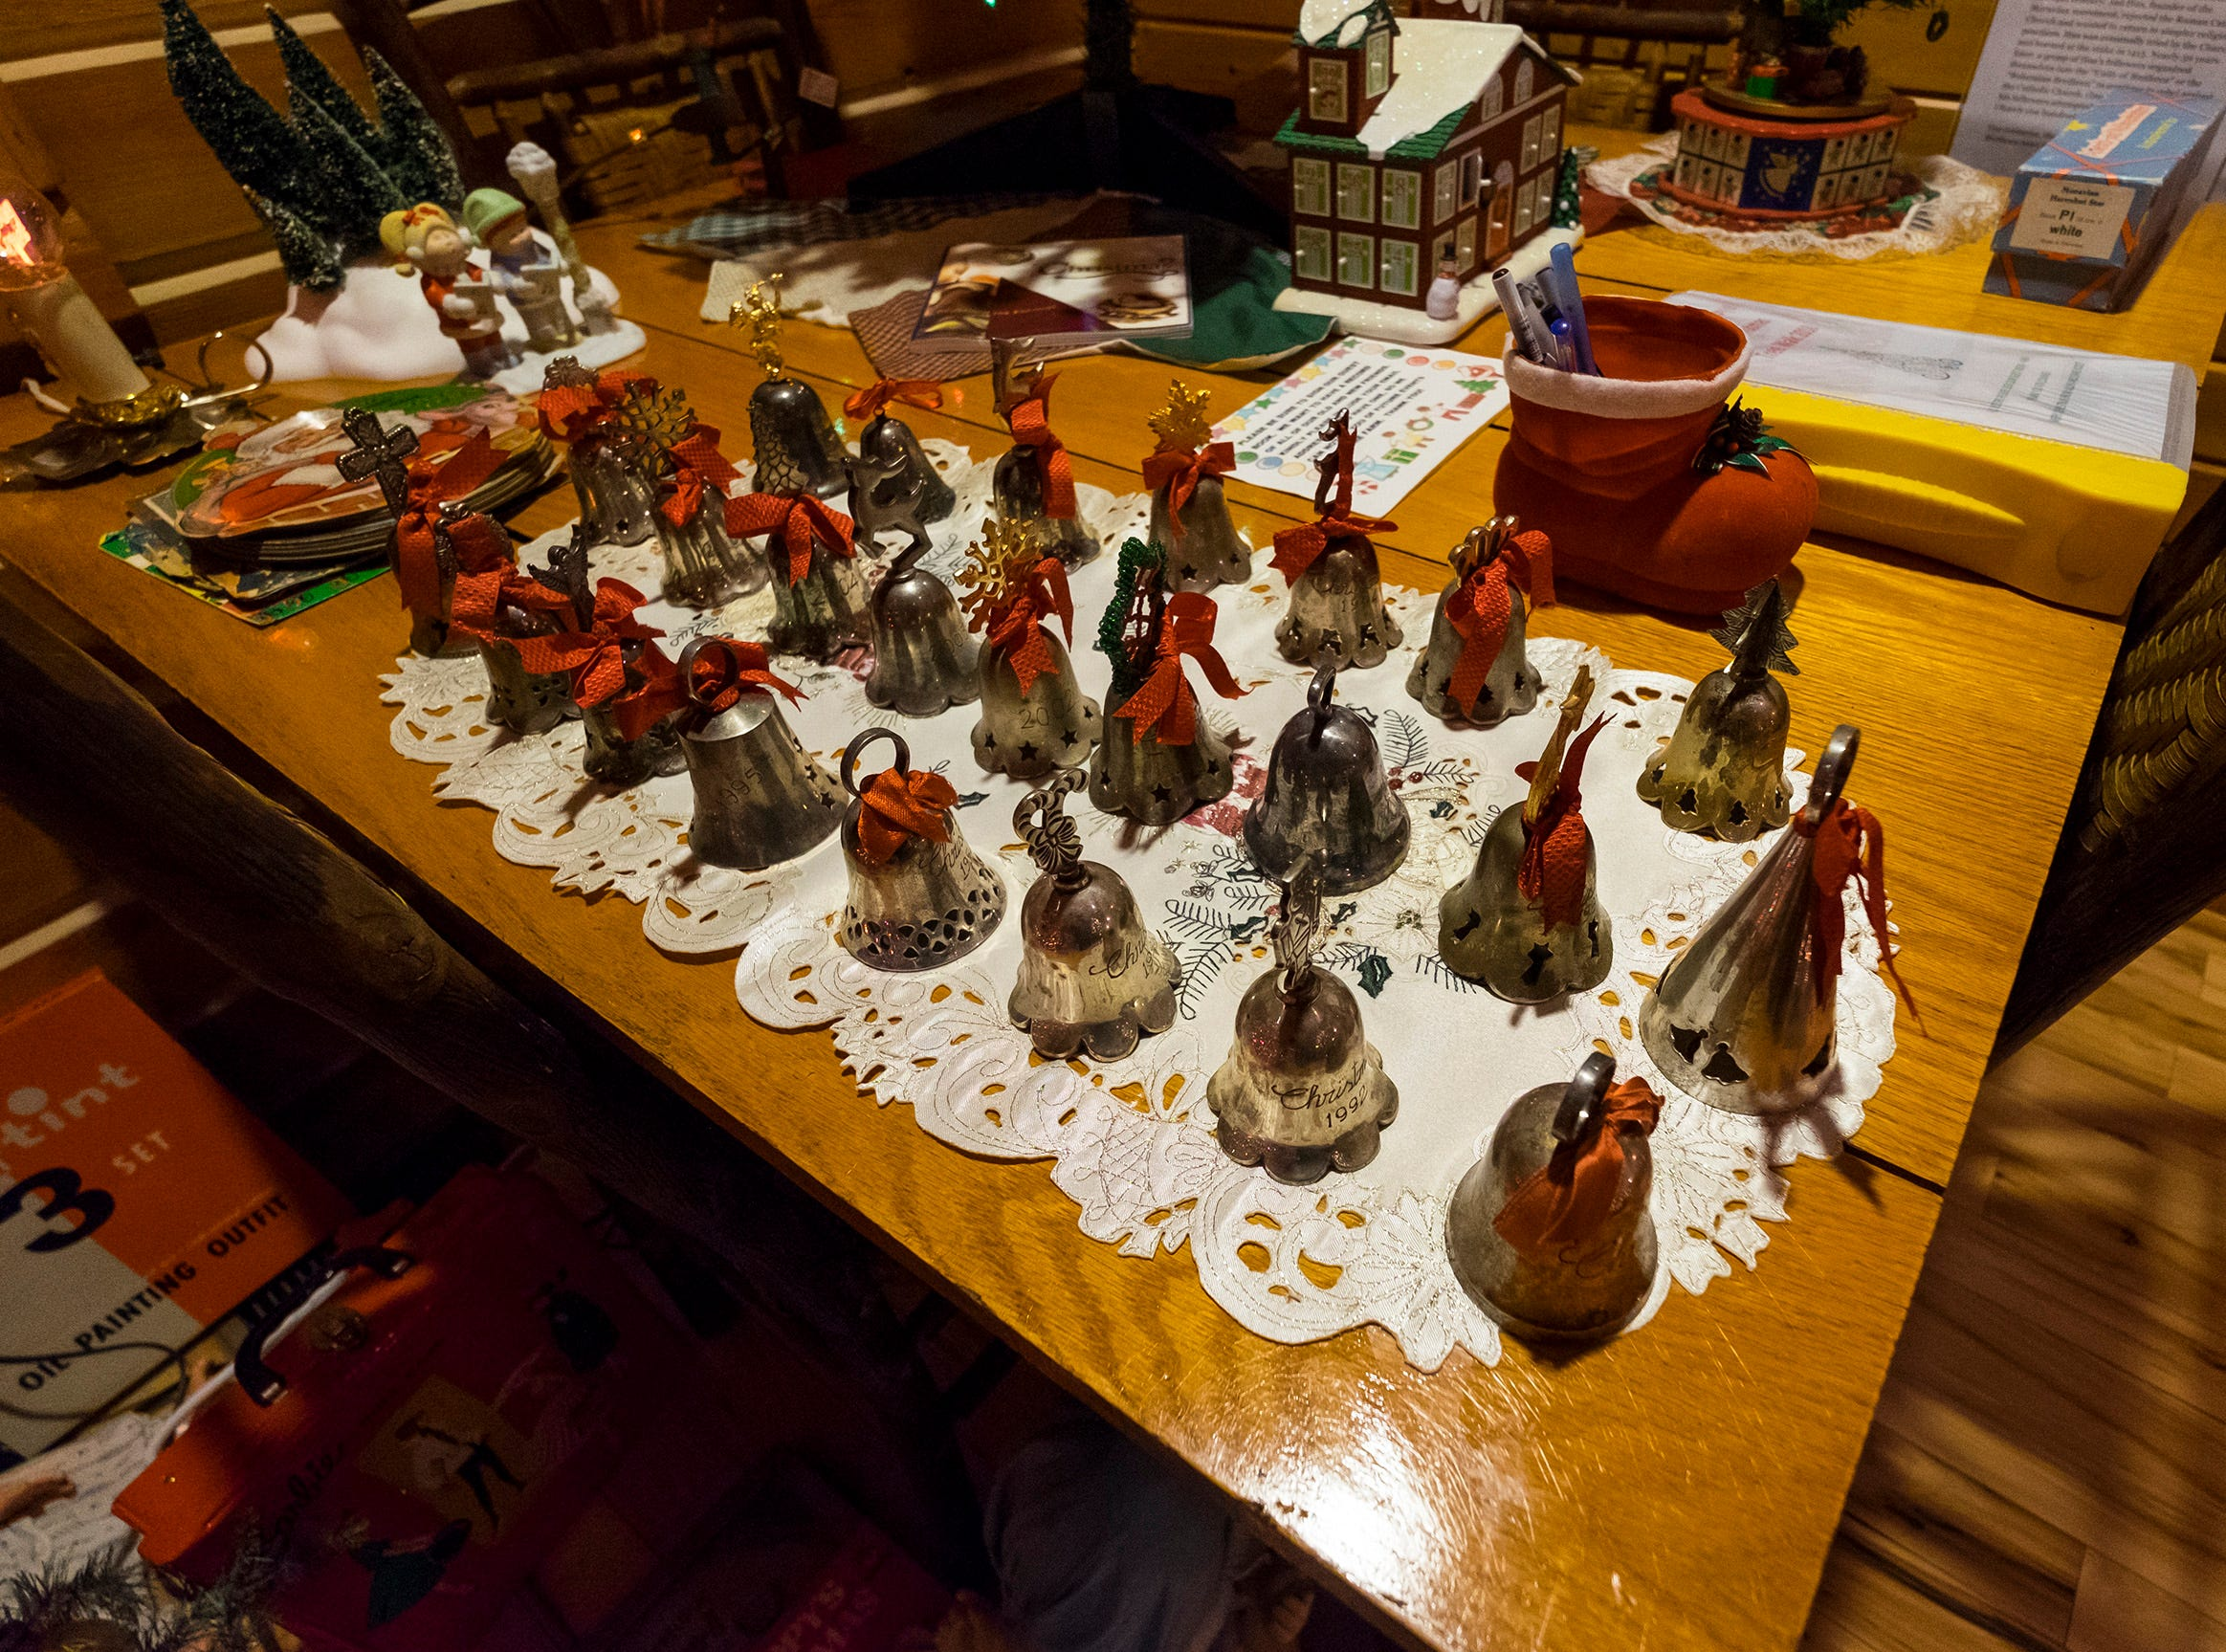 An assortment of hand bells are arranged on a table for the annual History of the Christmas Tree Walk at Al and Diane Kodet's home in Algonac.